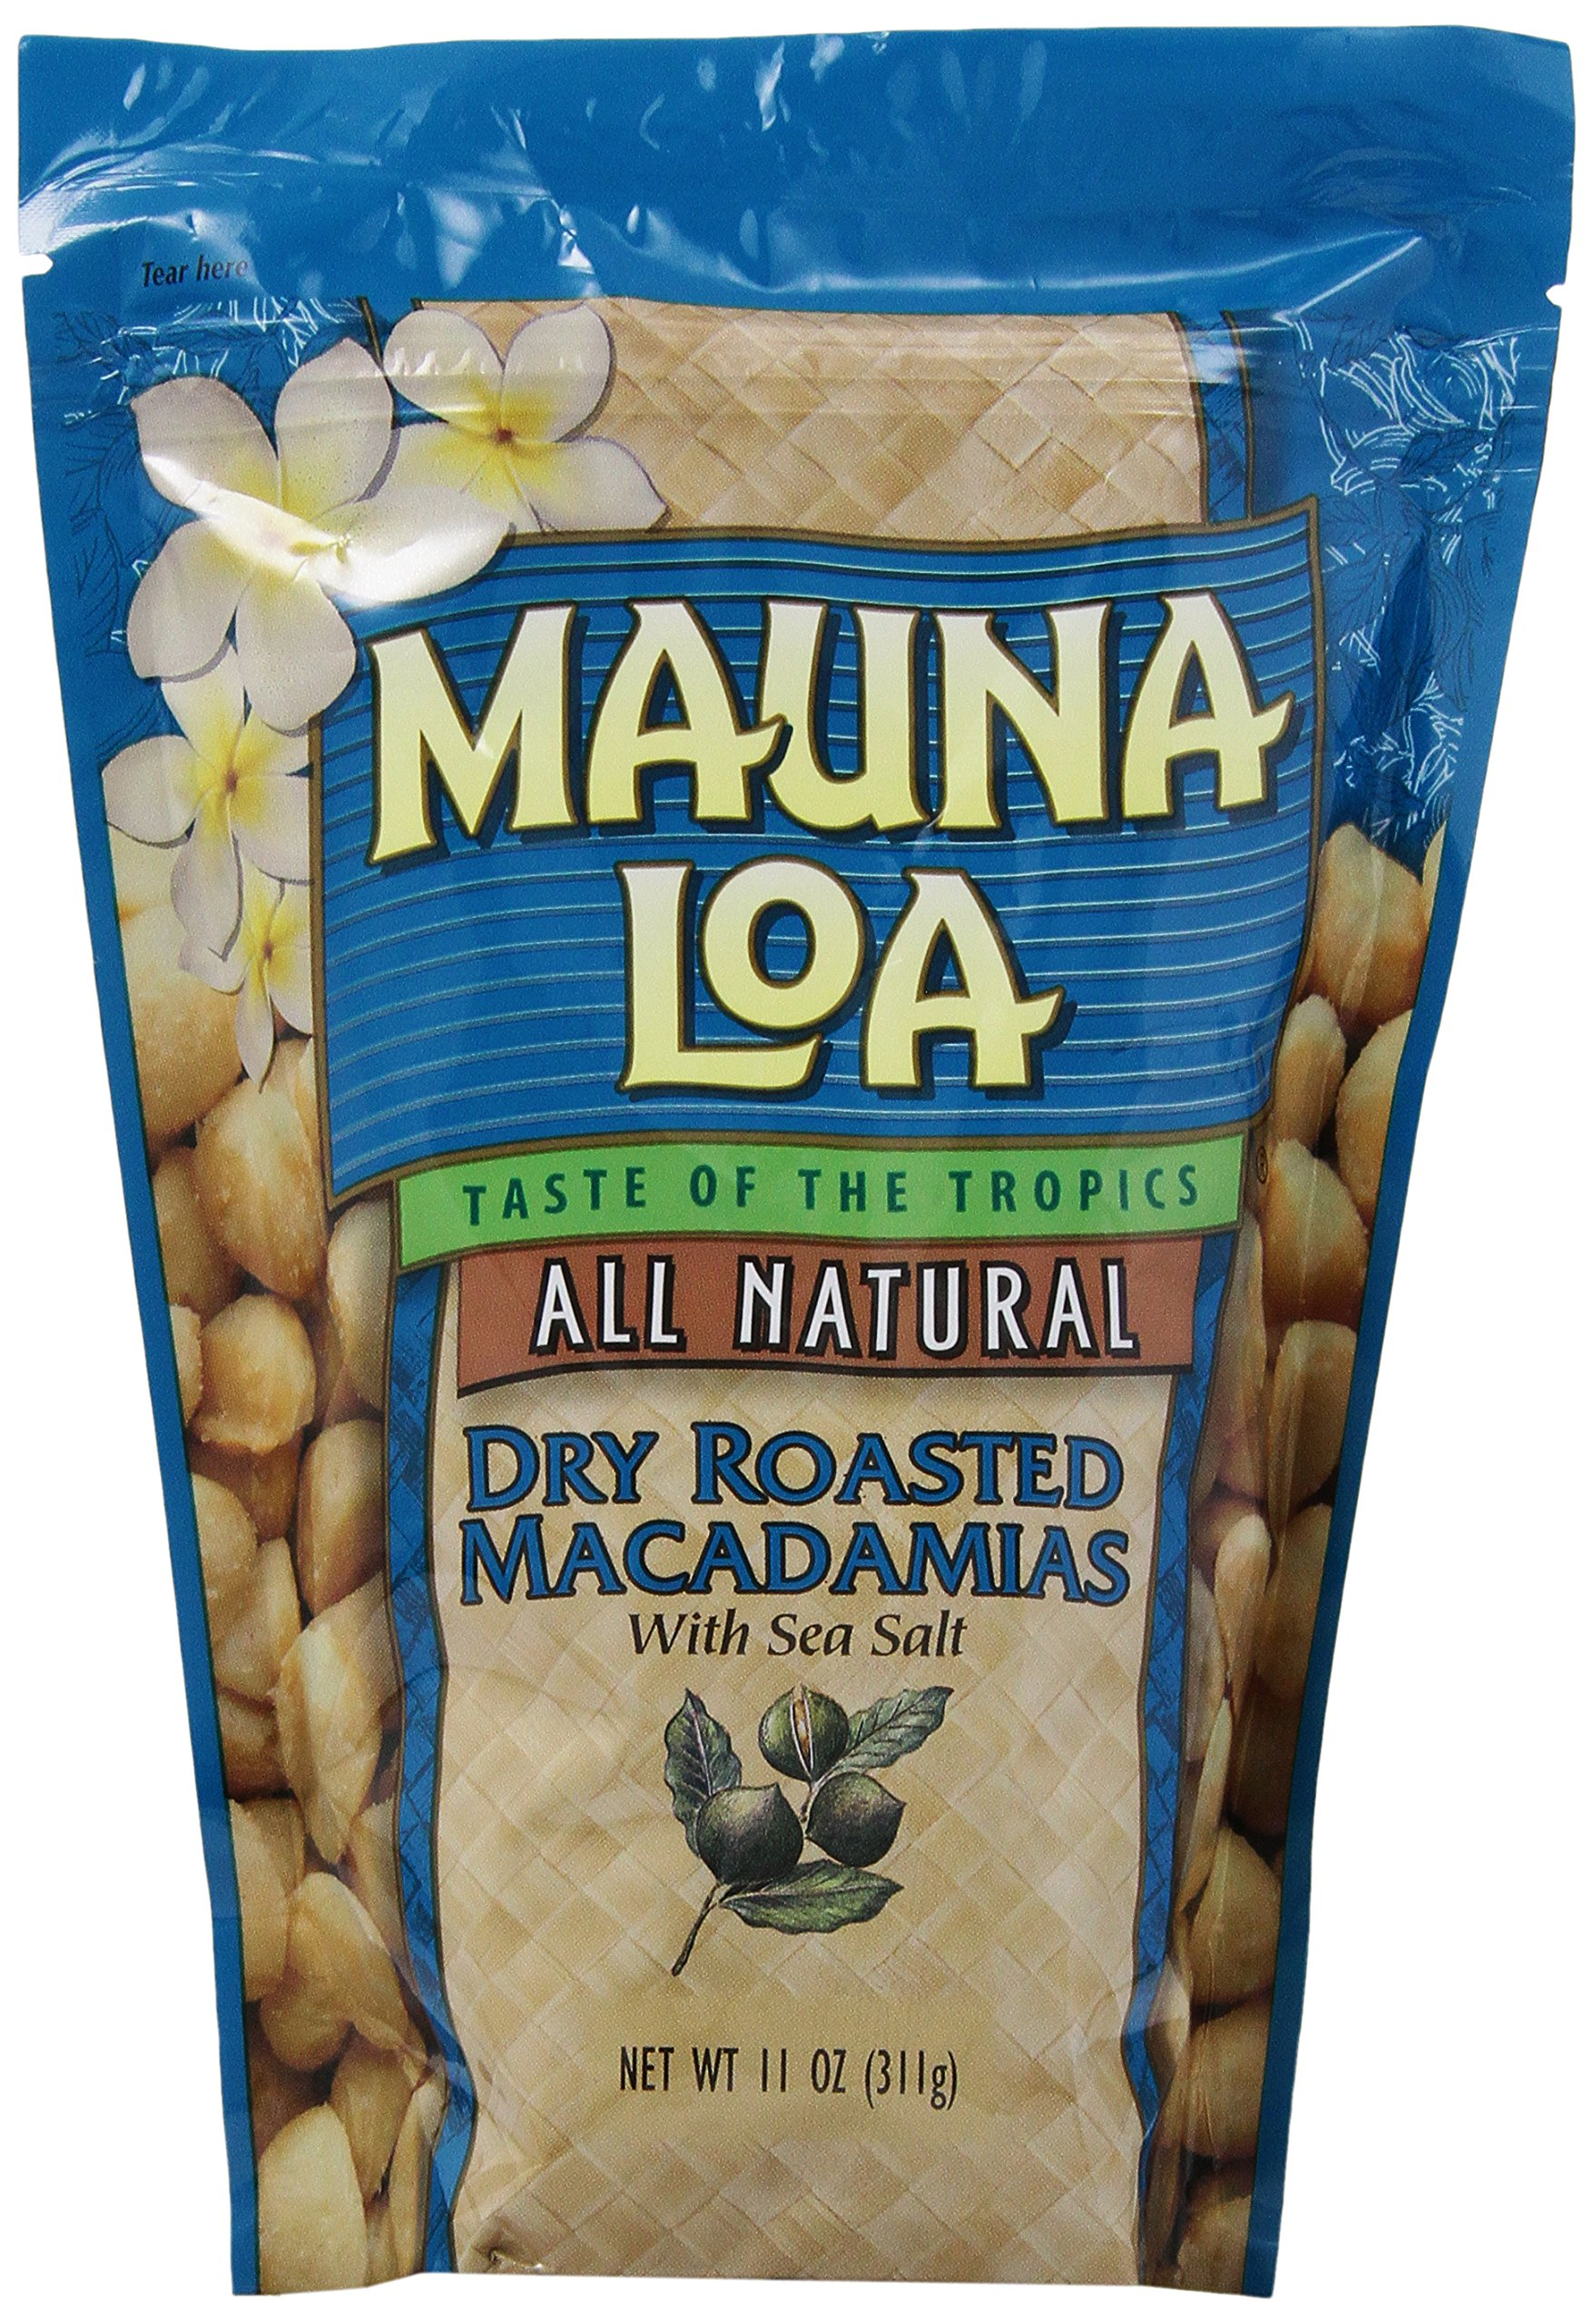 Hawaiian Mauna Loa Dry Roasted Macadamia Nuts & Sea Salt 11 Oz. Bag